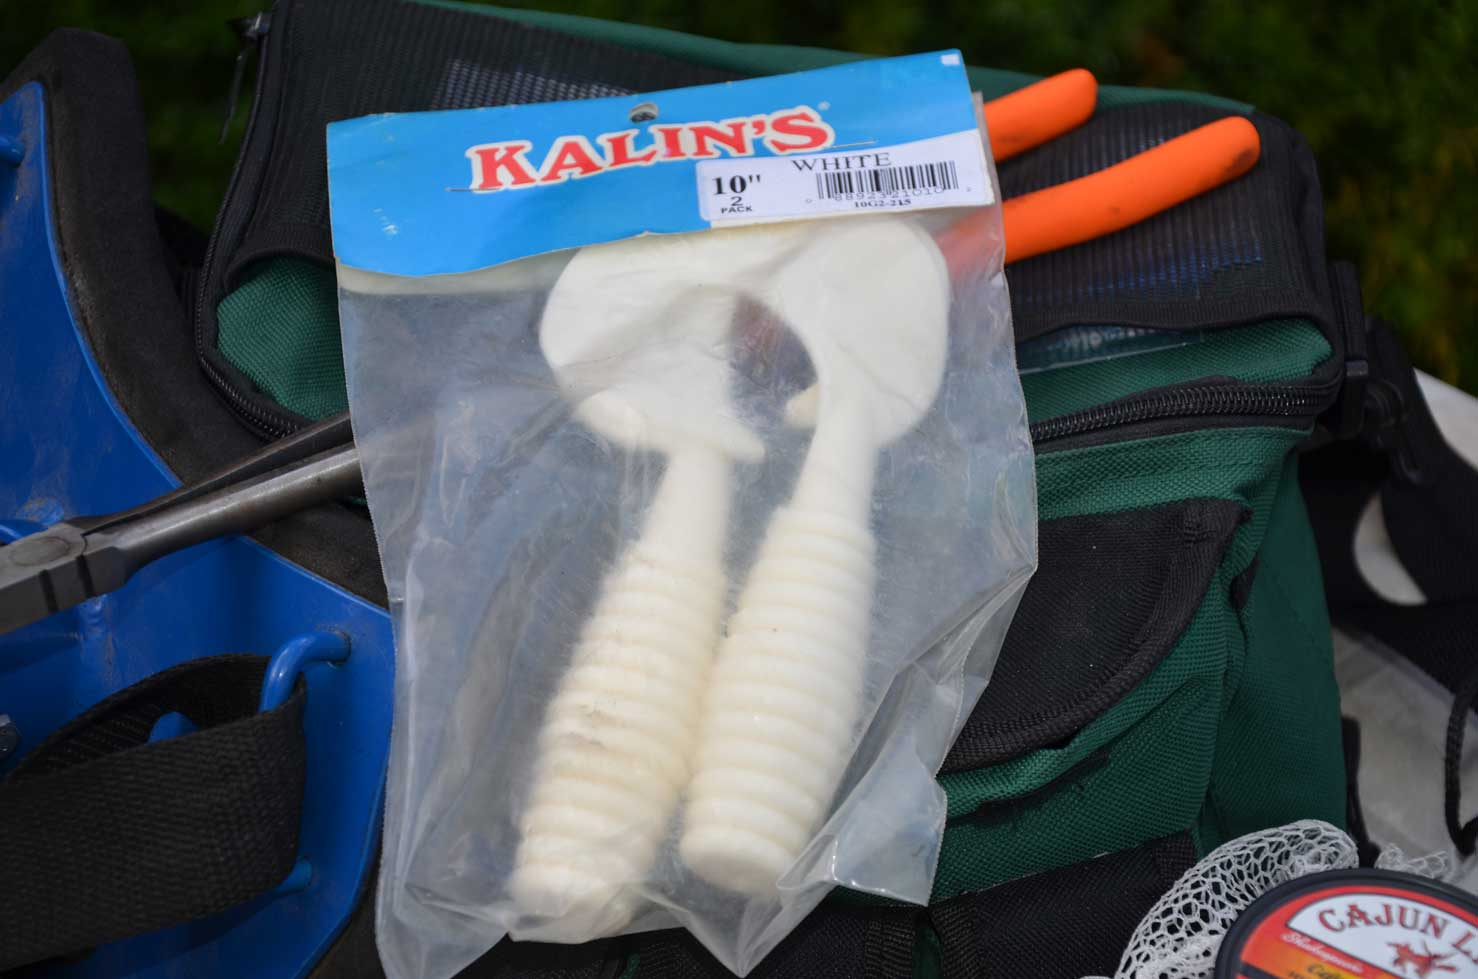 Kalin's White Grub - 10 in